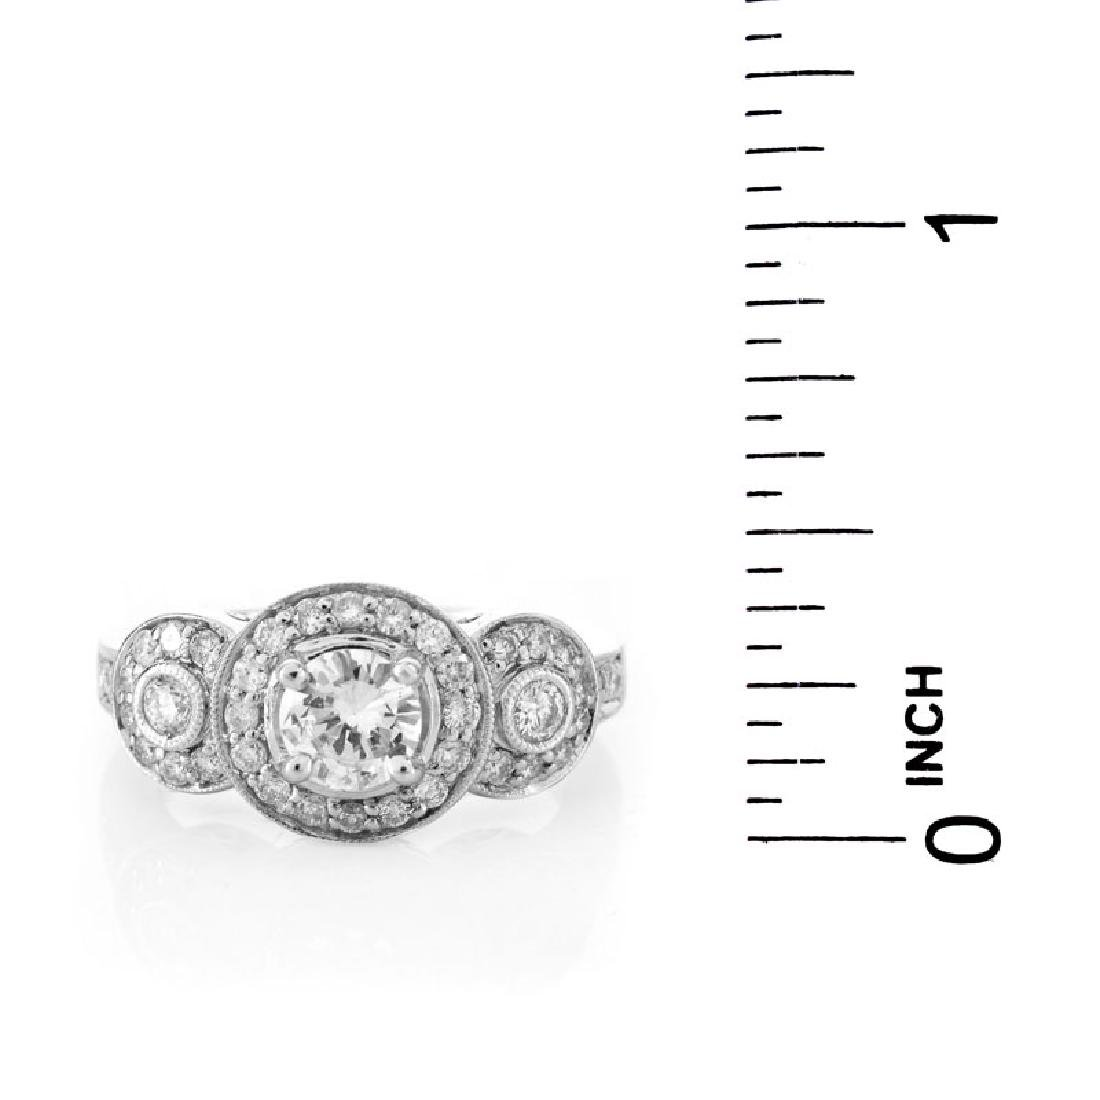 Approx. 1.40 Carat Diamond and 18 Karat White Gold - 6